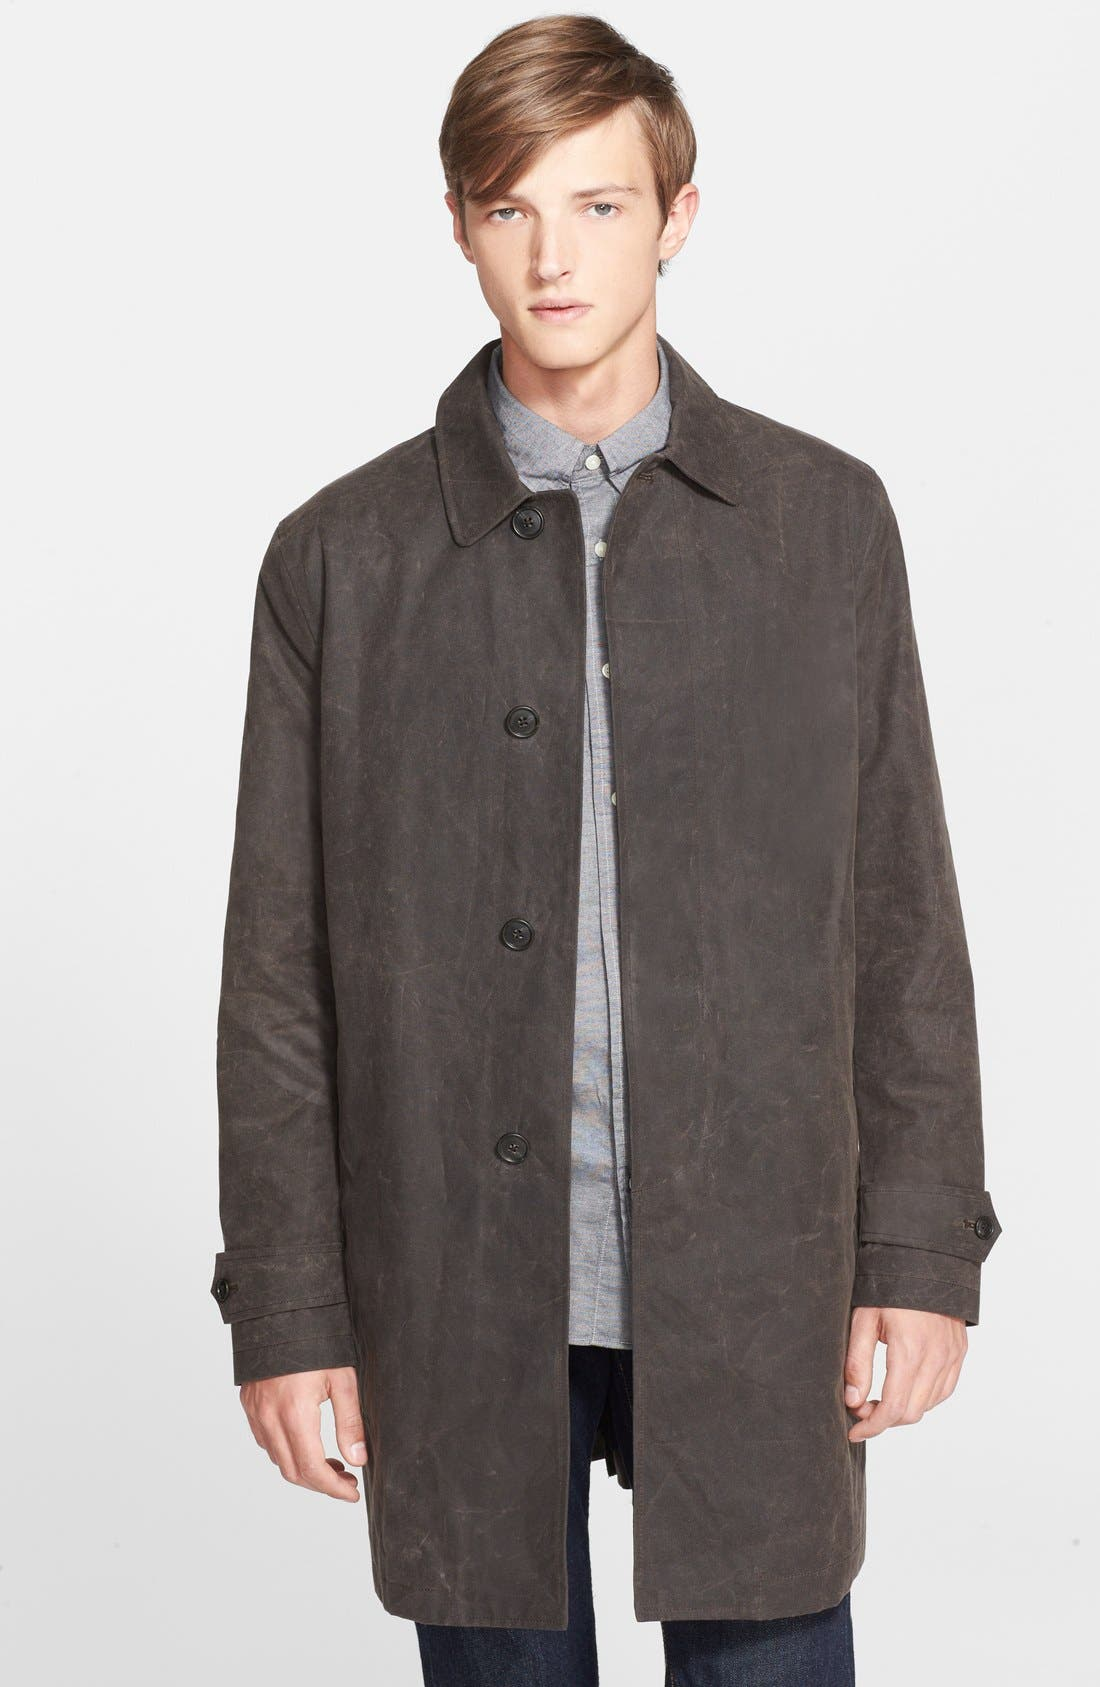 Alternate Image 1 Selected - Jack Spade 'Waxwear' Water Resistant Waxed Canvas Trench Coat